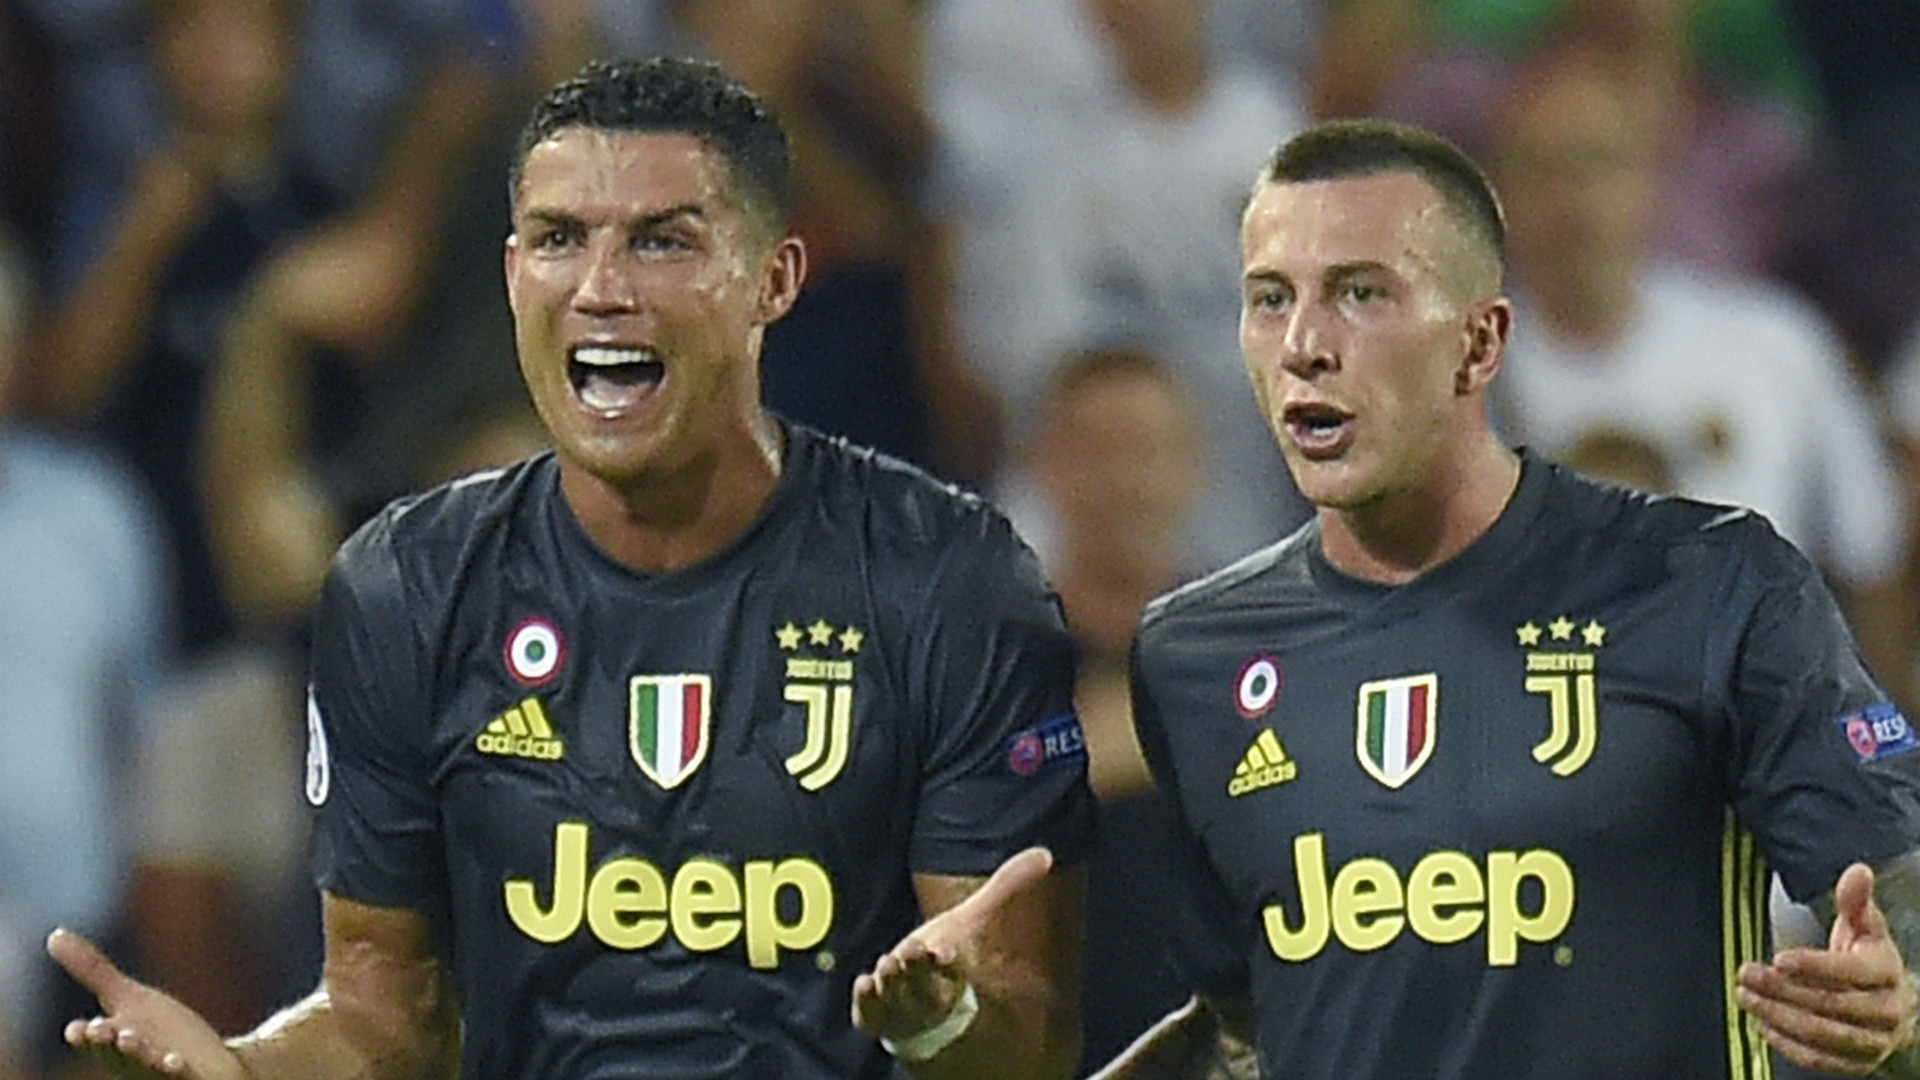 Juventus midfielder Matuidi: Ronaldo dismissal was incomprehensible